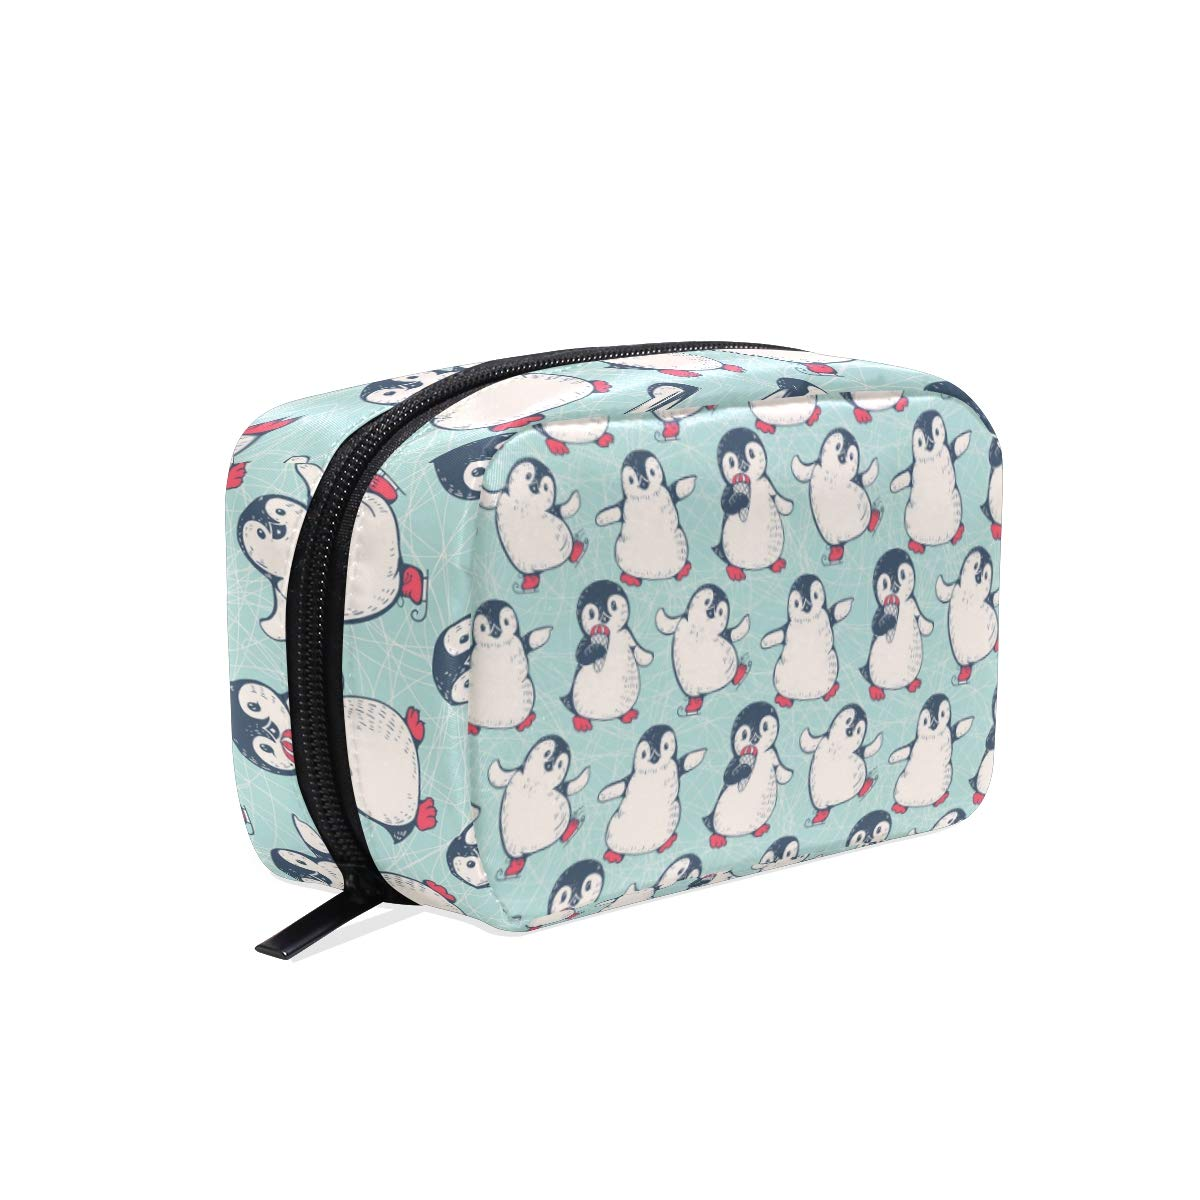 ZZAEO Cute Baby Penguin Makeup Bag Cute Printing Mini Cosmetic Case Organizer Travel Accessories Toiletry Beauty Pouch for Women Teens Girls